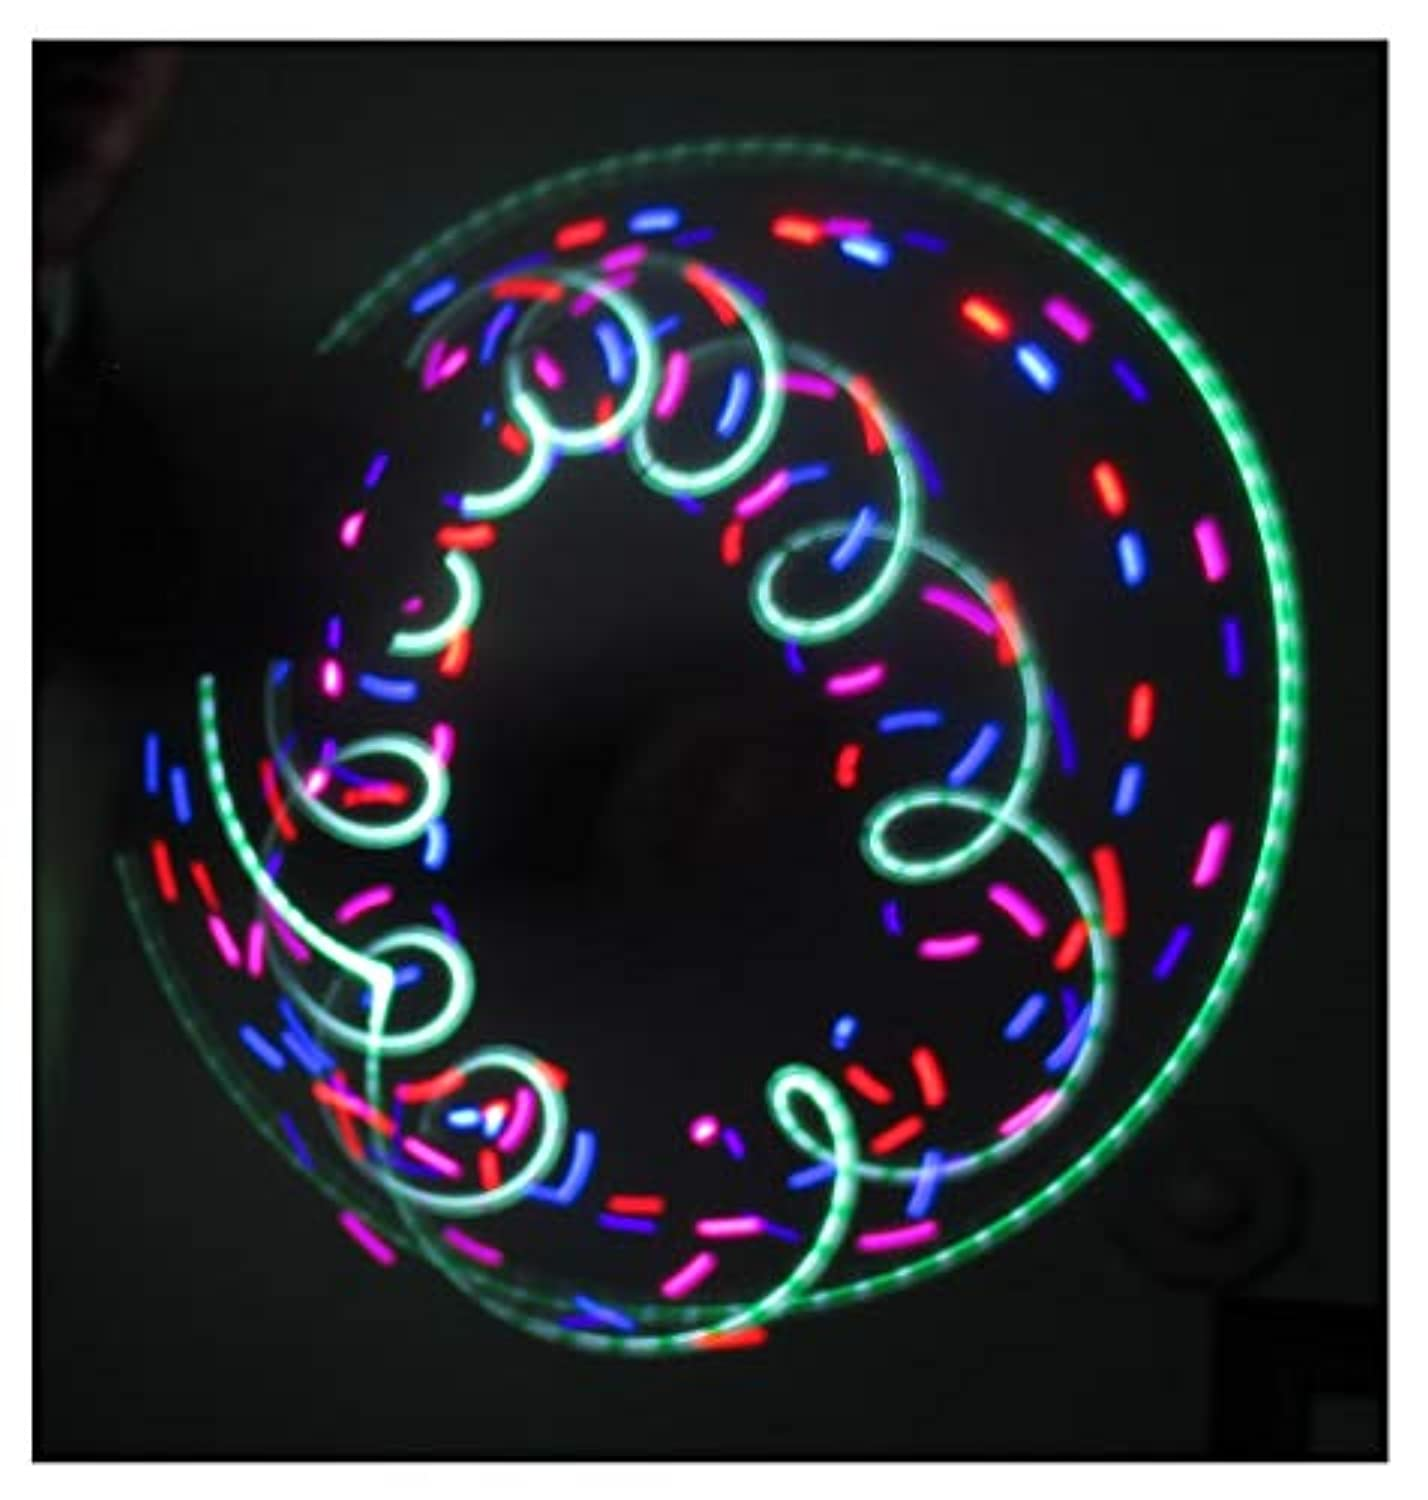 [Rob's Super Happy Fun Store]Rob's Super Happy Fun Store Emerald City Lights Orbital Rave Light Toy LED Orbit Spinning Light Show by [並行輸入品]